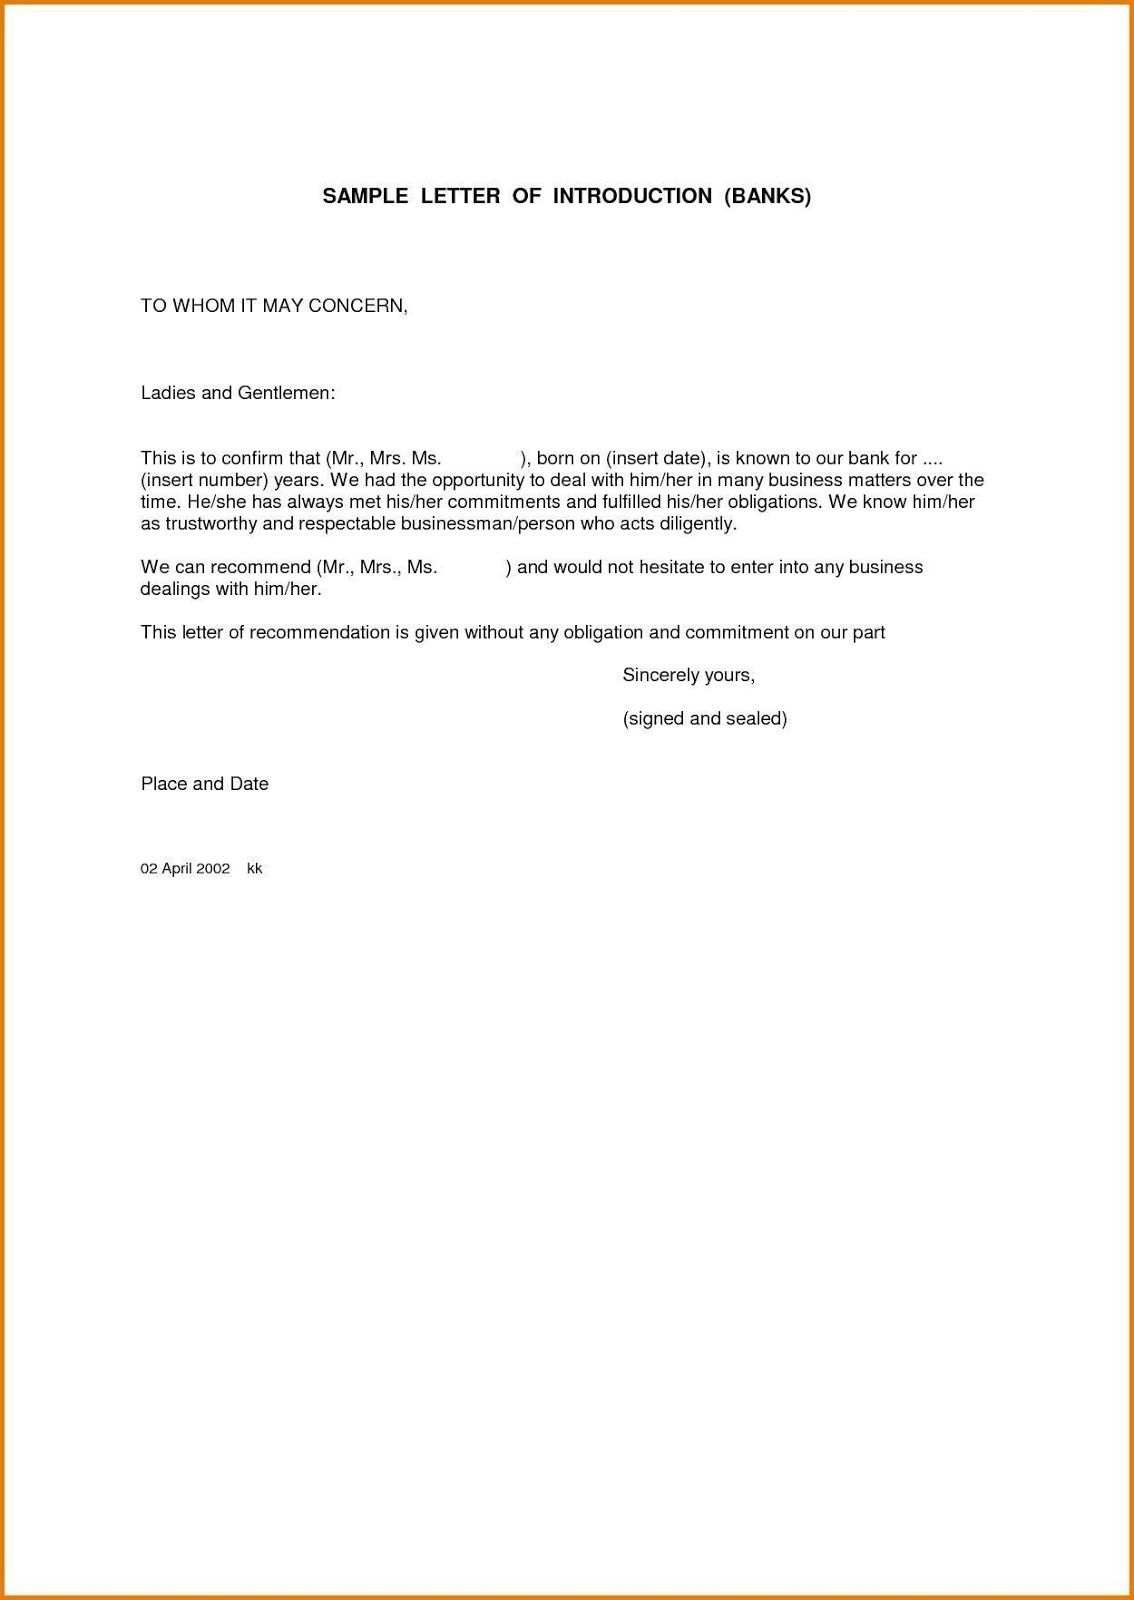 To Whom It May Concern Letter Format For Vehicle Sample Letter in